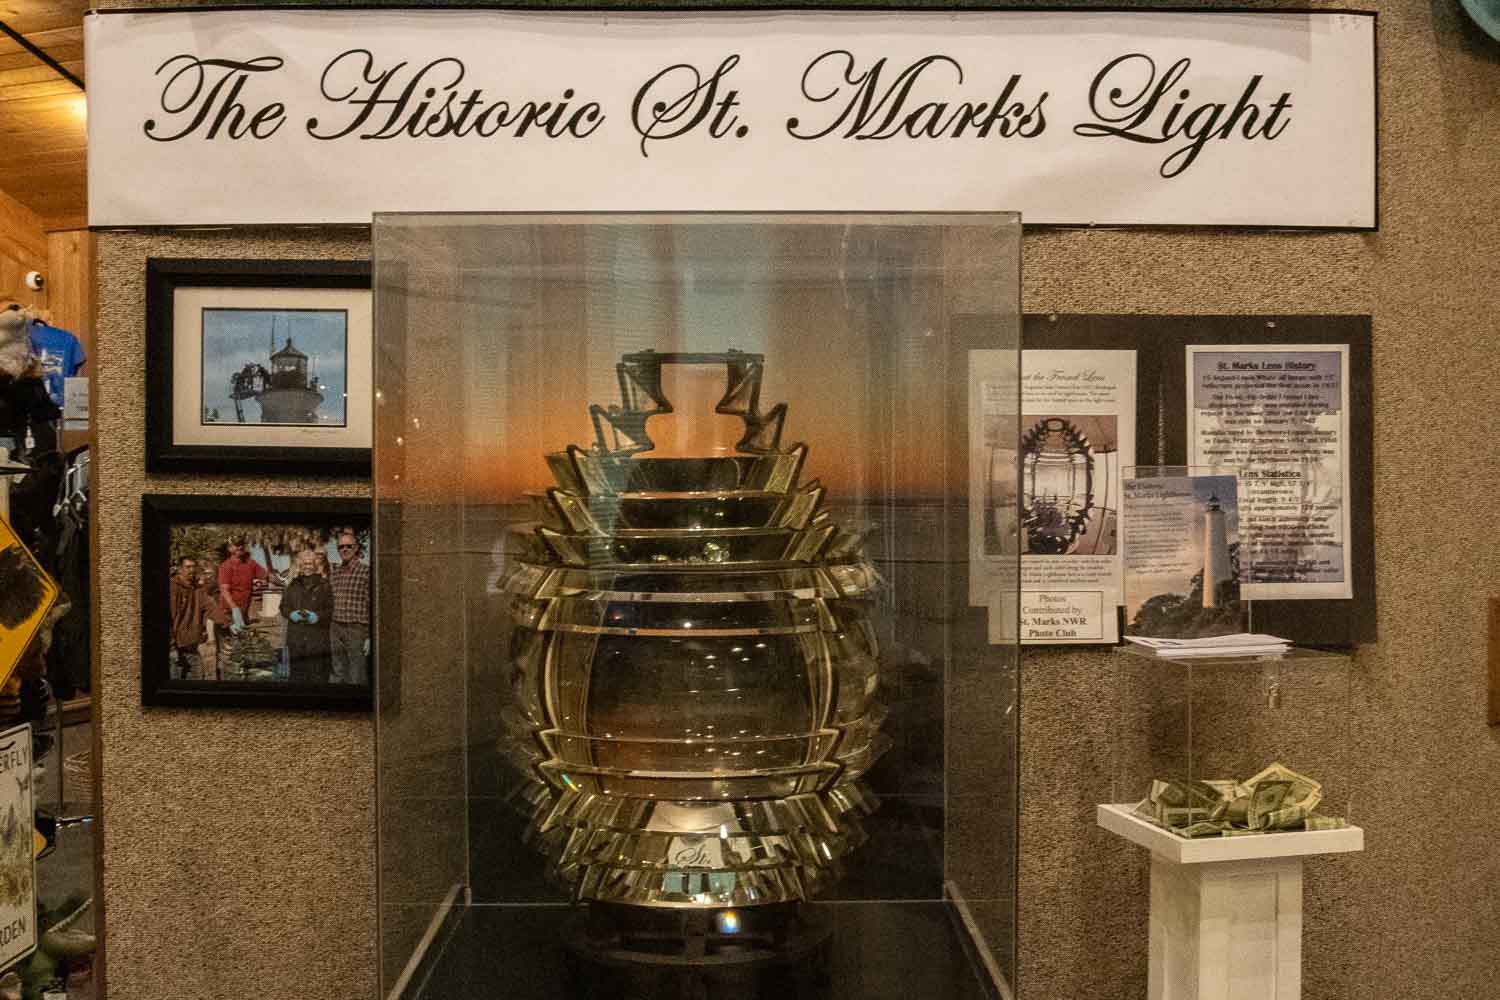 The original Fresnel Lens is in the Visitor Center